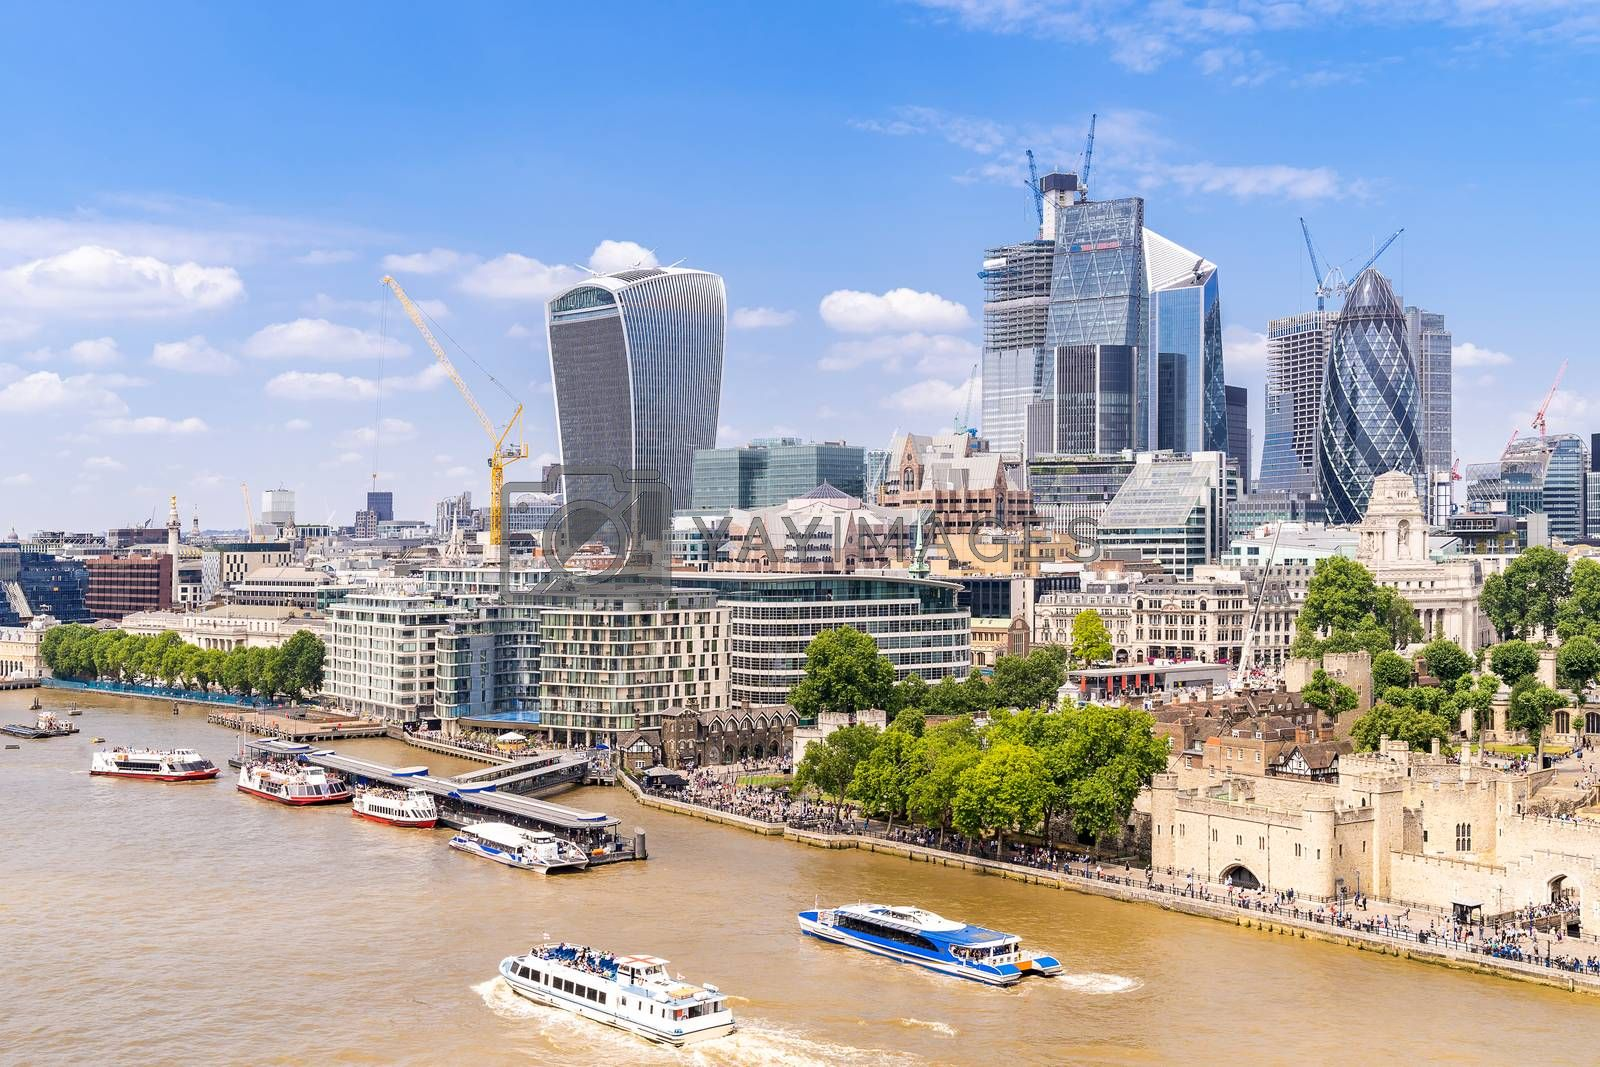 London downtown cityscape skylines building with River Thames in London UK